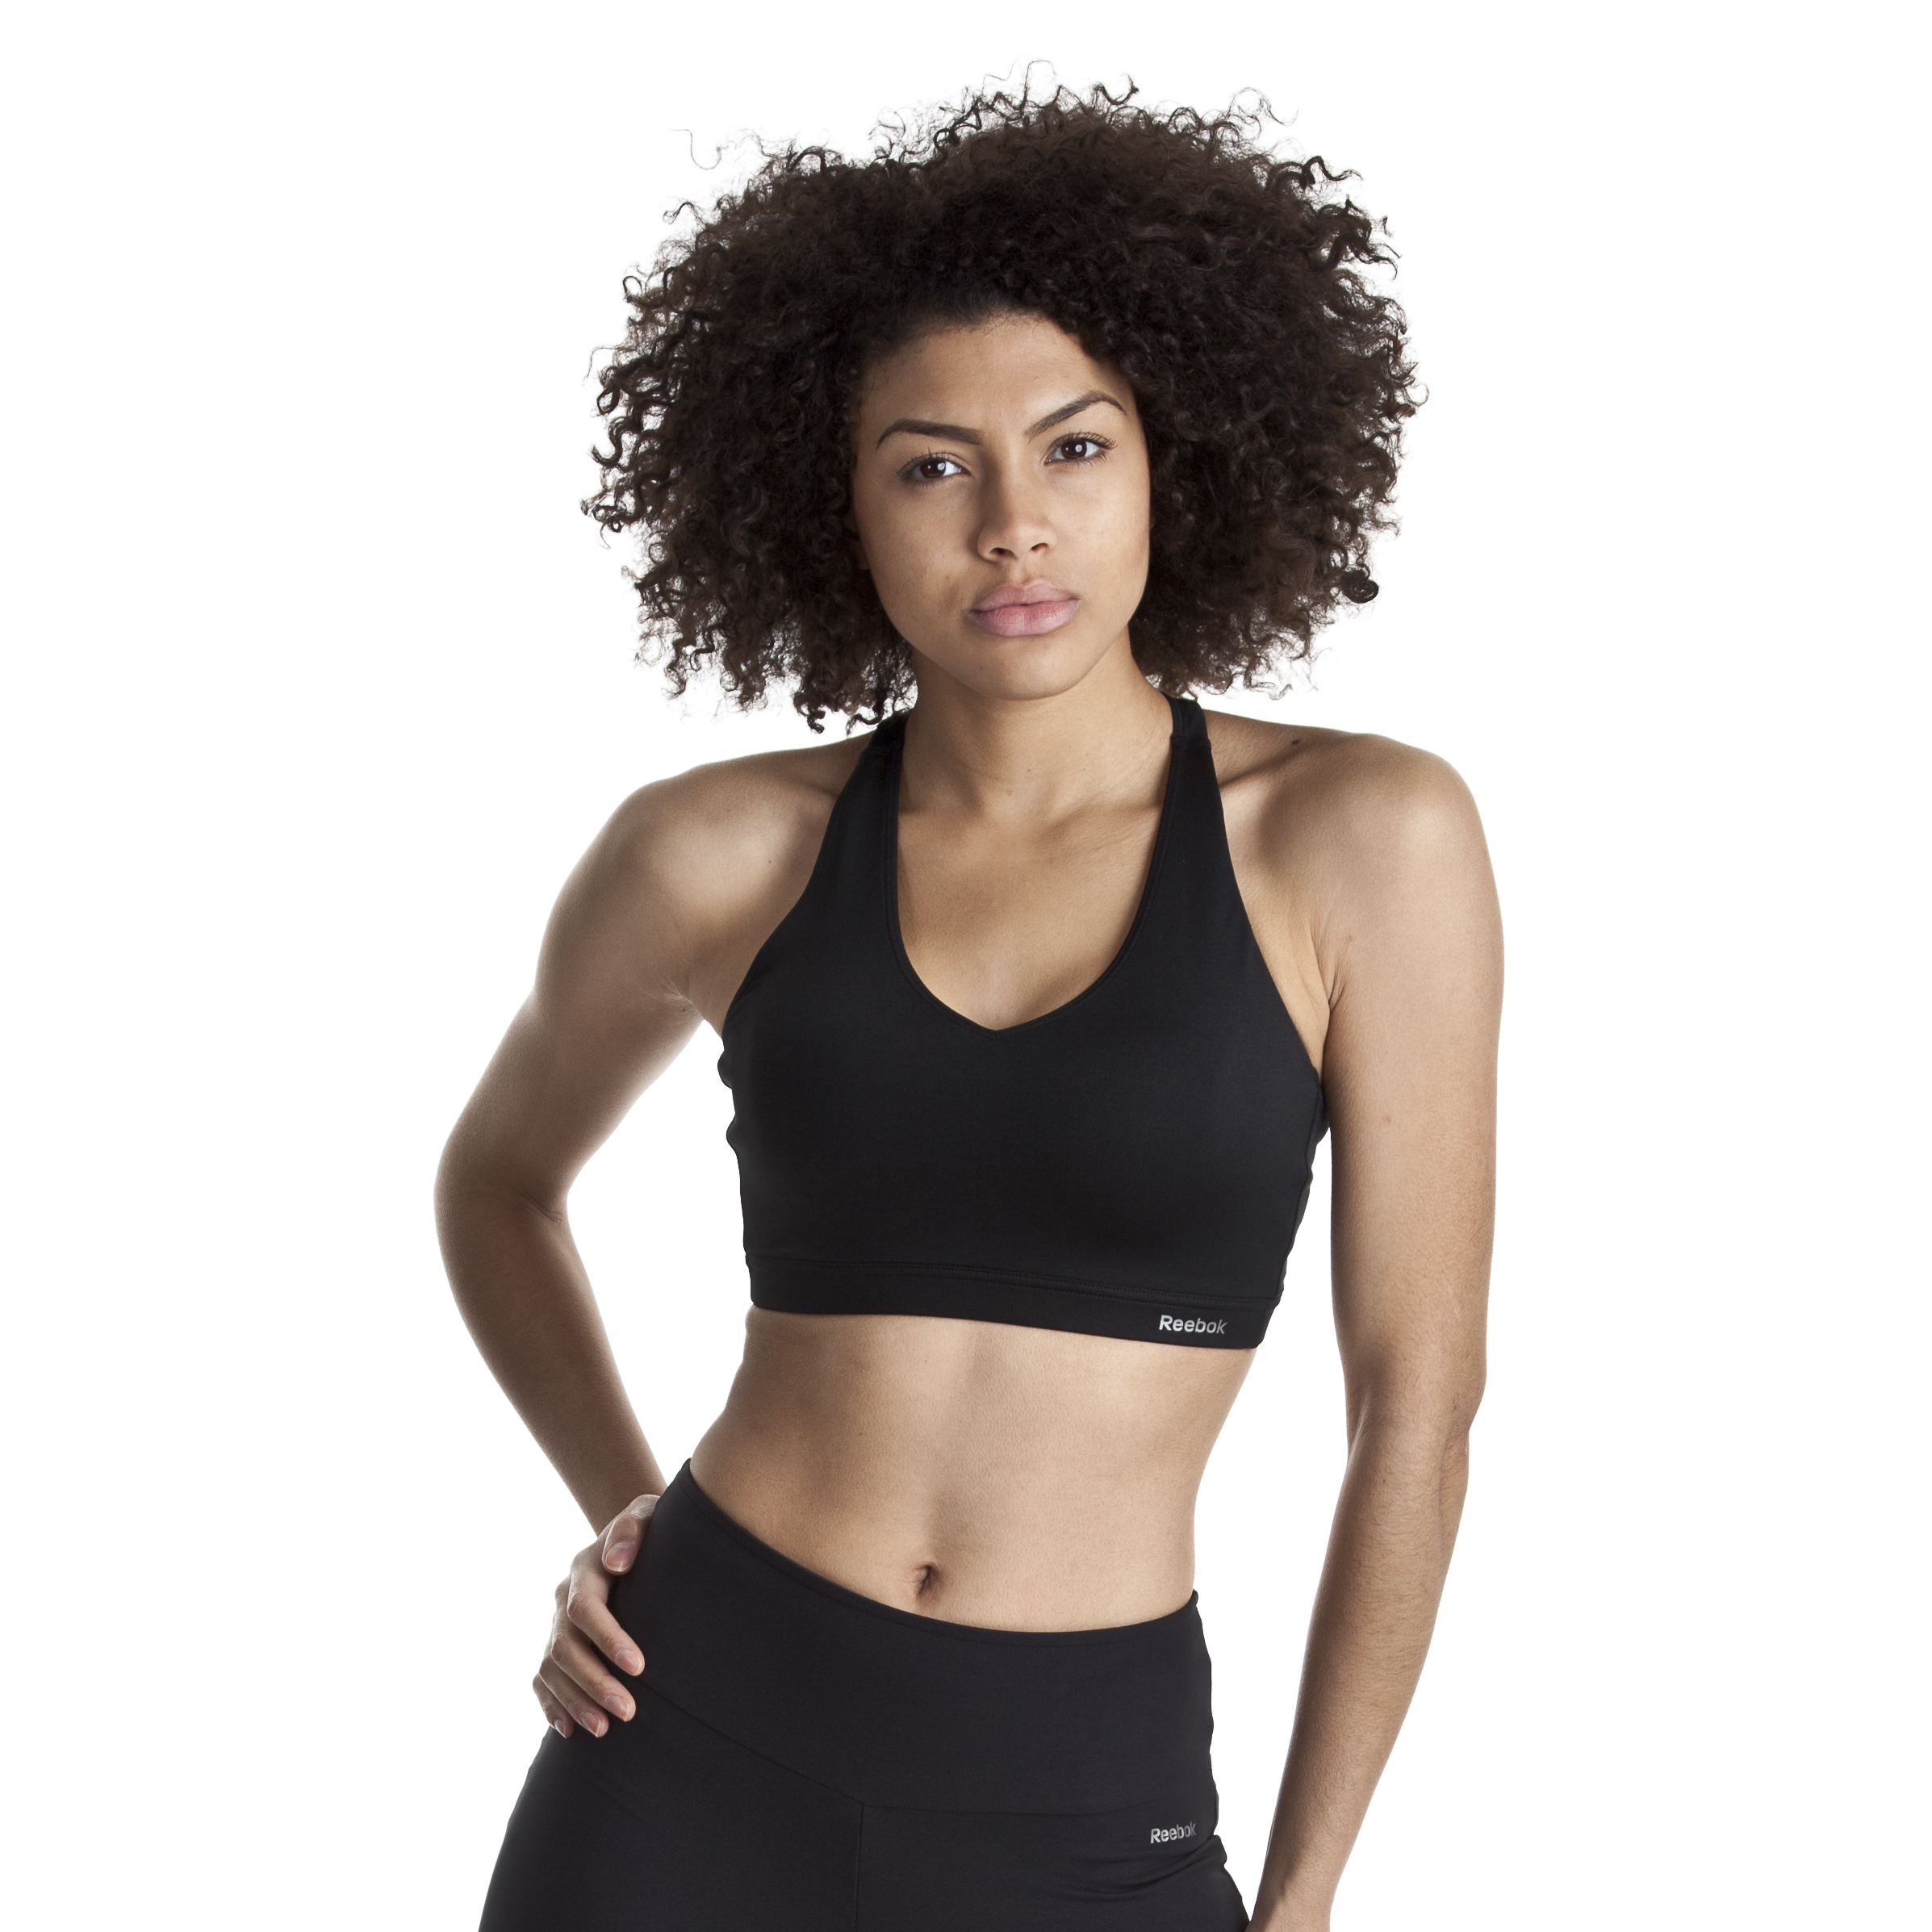 Reebok Se Short Bra Top - Black - Women